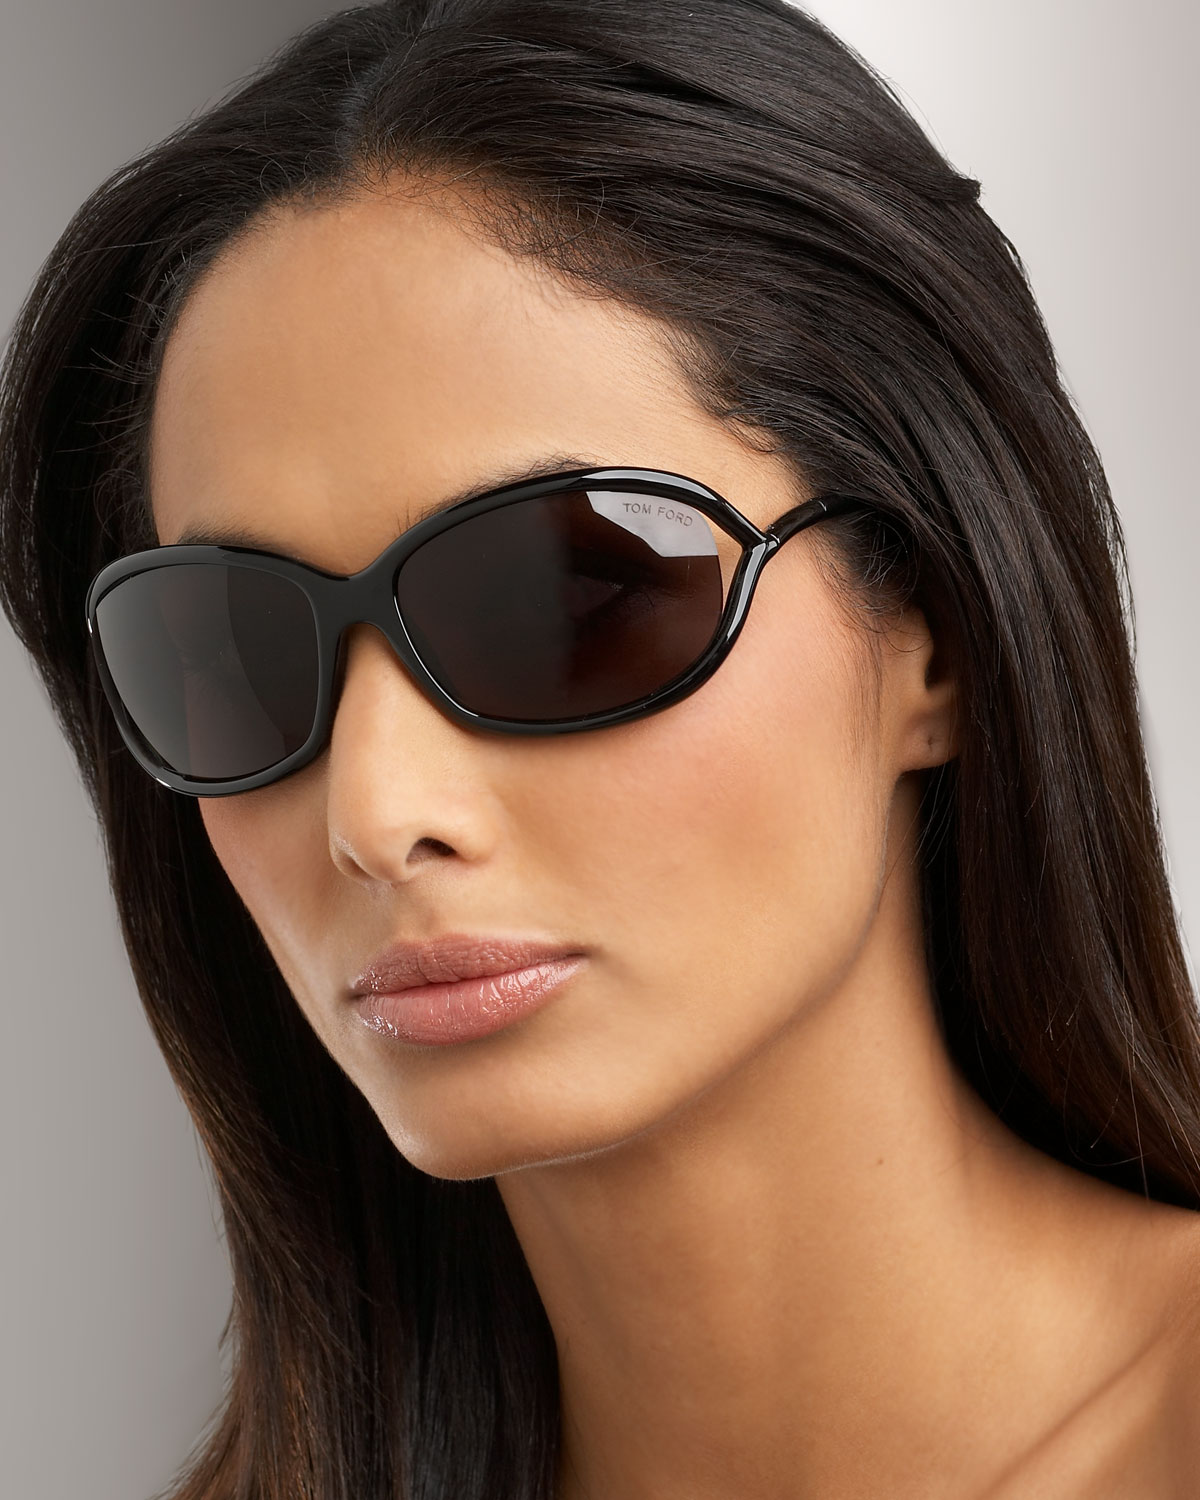 tom ford jennifer sunglasses in black lyst. Cars Review. Best American Auto & Cars Review